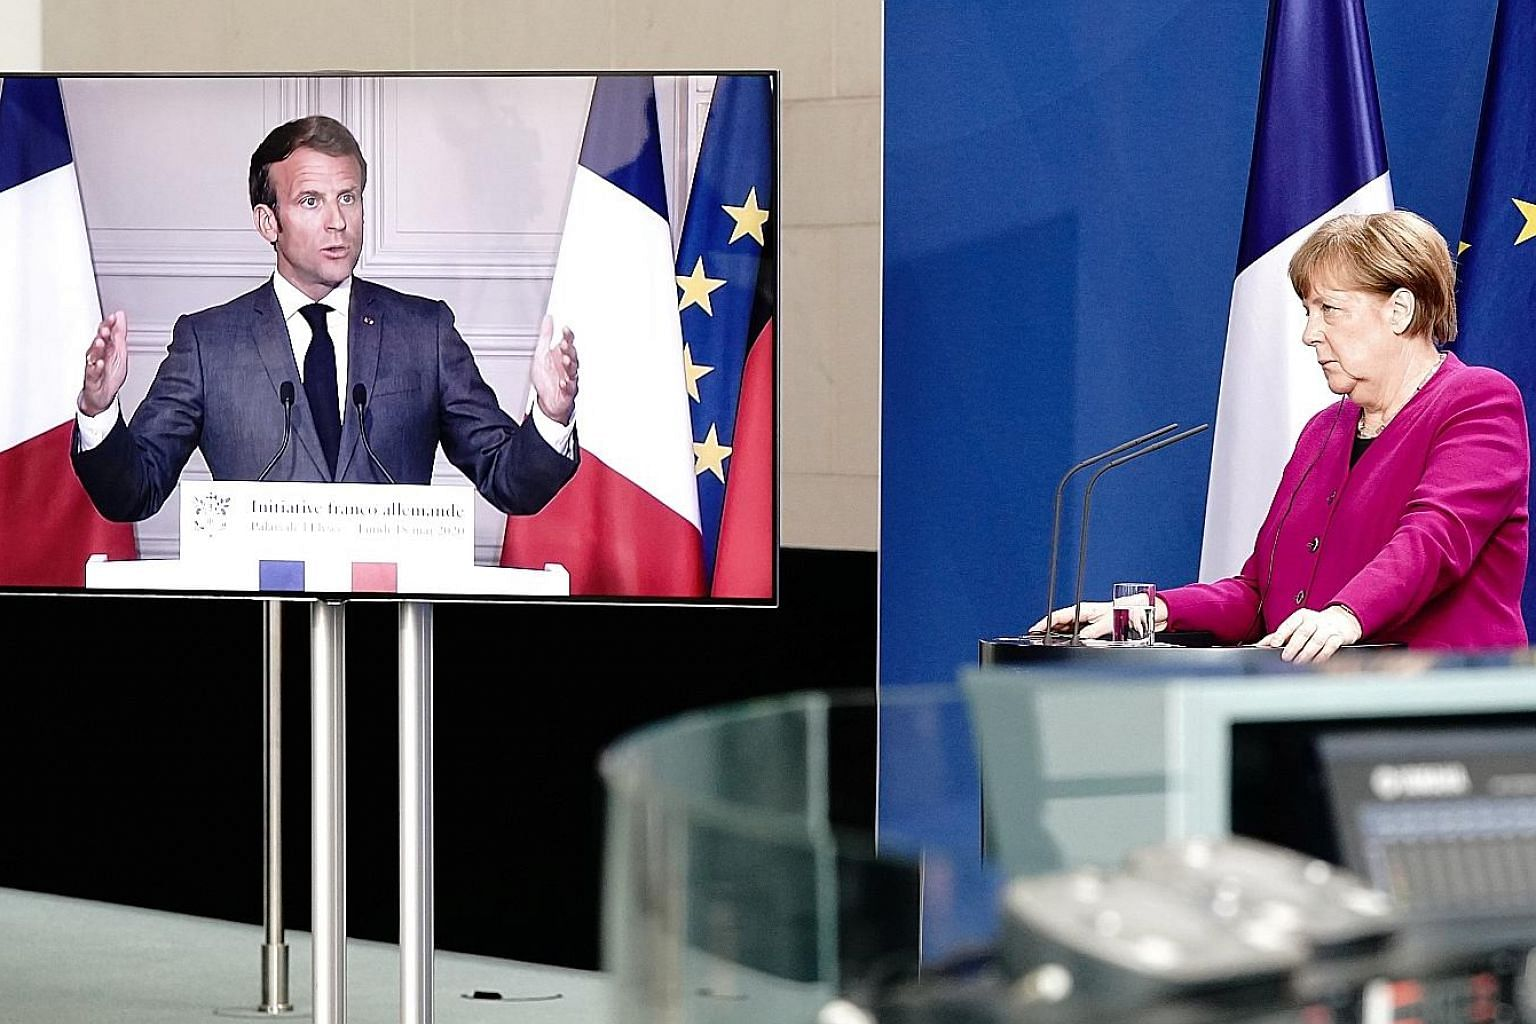 French President Emmanuel Macron and German Chancellor Angela Merkel at their joint video news conference on Monday, during which they supported the idea of creating a €500 billion (S$775 billion) bond designed to assist countries and industries se